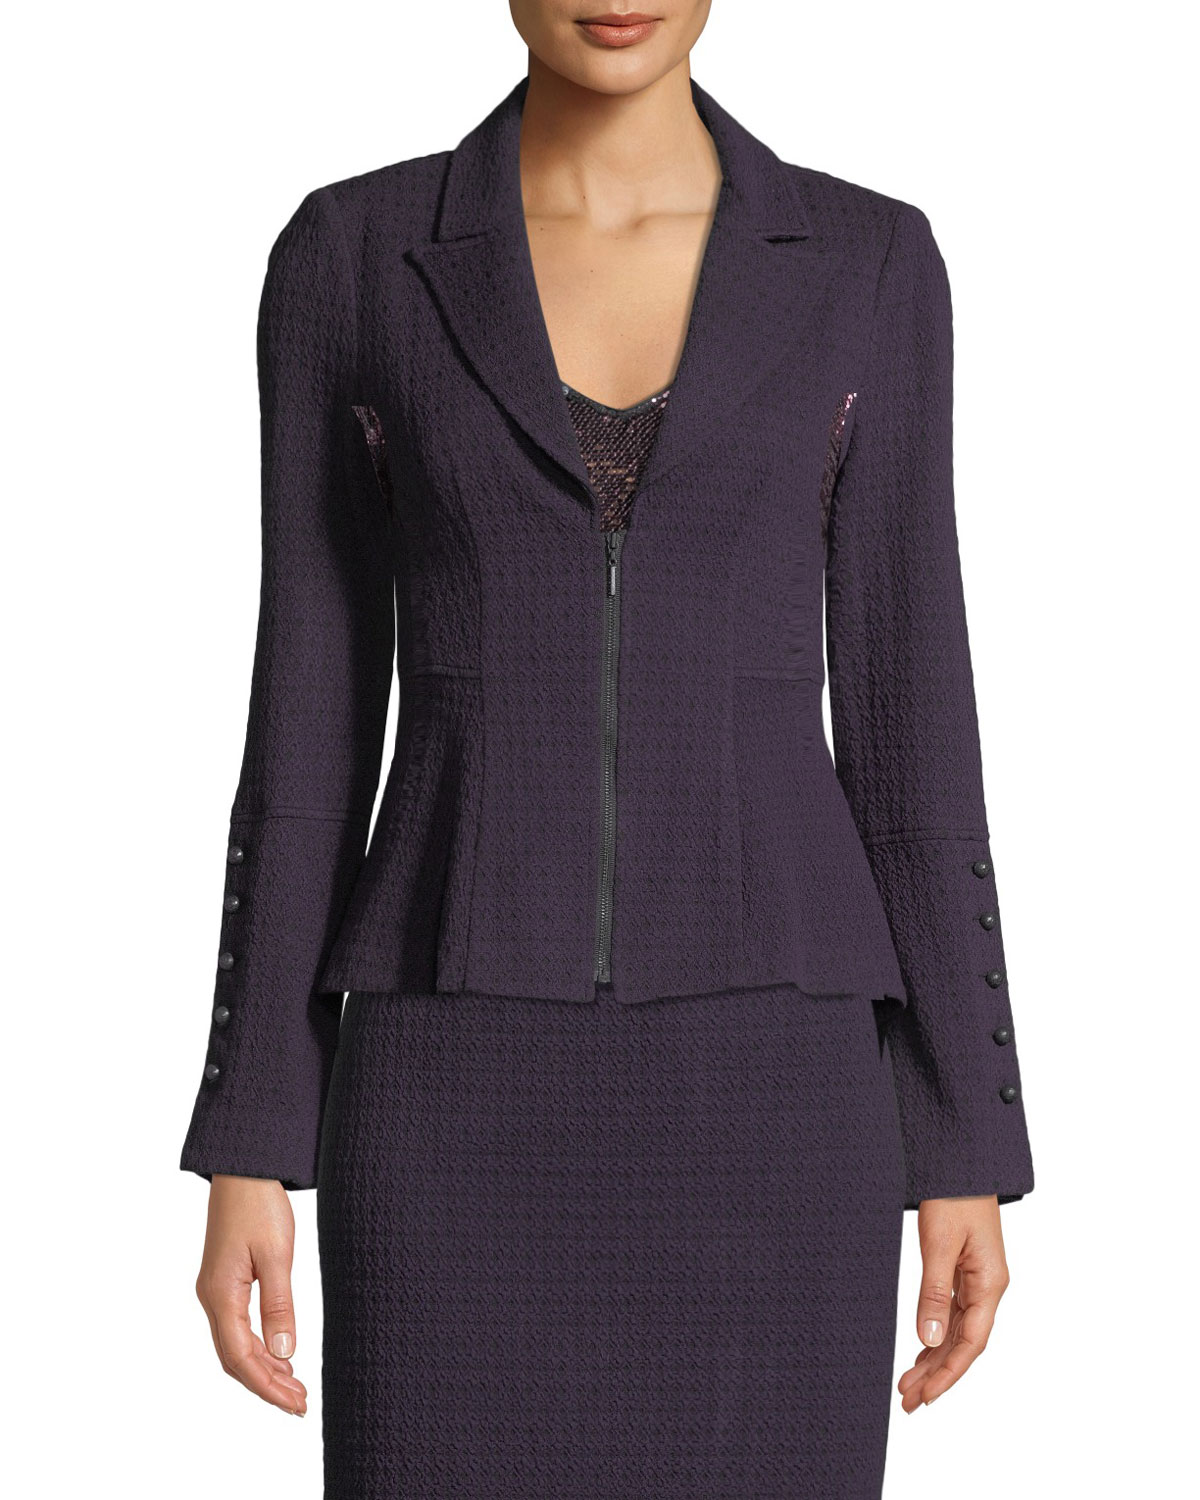 Nanette Lepore EXPEDITION ZIP-FRONT KNIT BLAZER